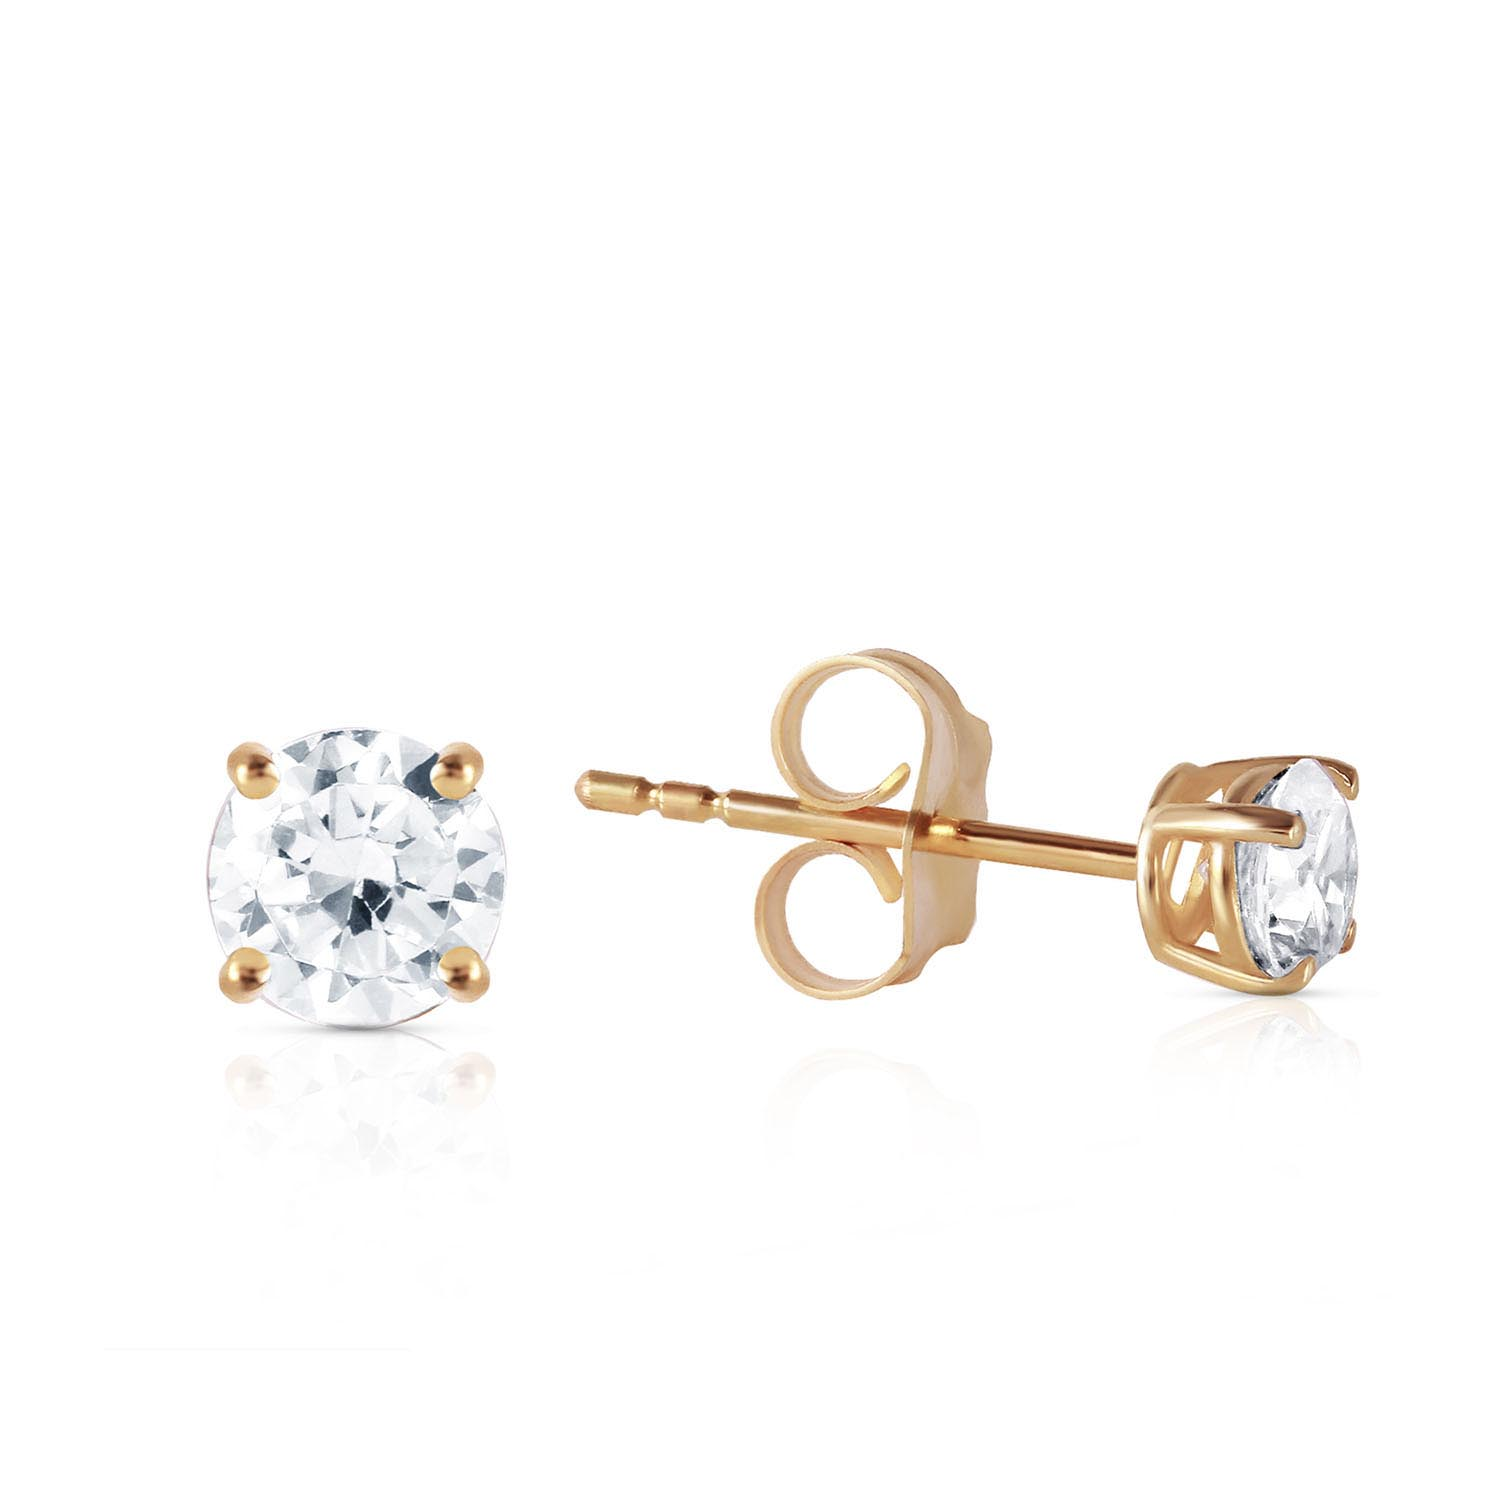 Diamond Stud Earrings 0.4 ctw in 9ct Gold